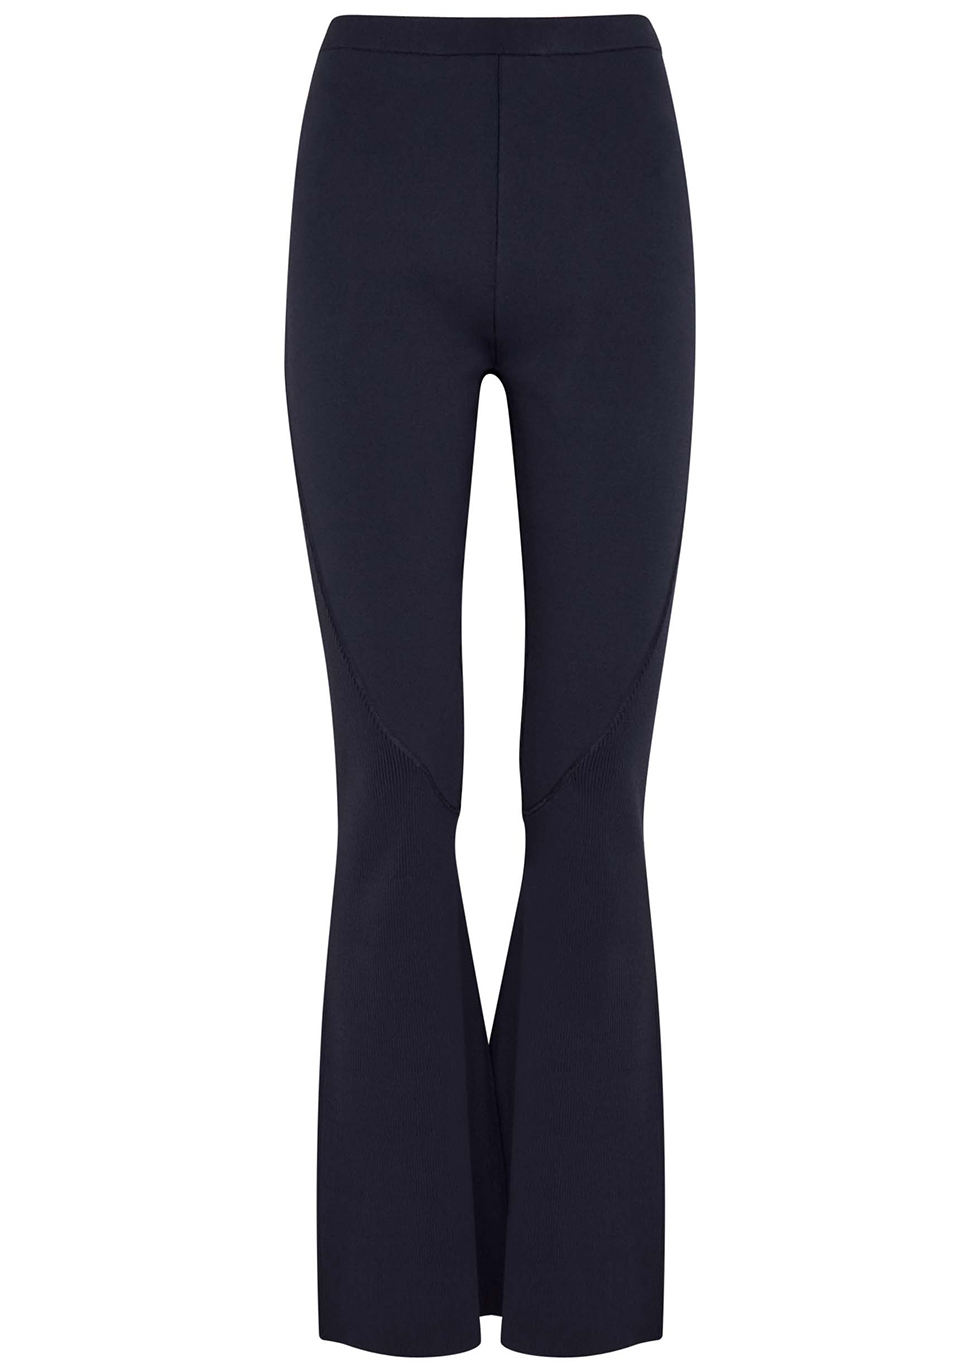 Collage navy flared stretch-jersey leggings